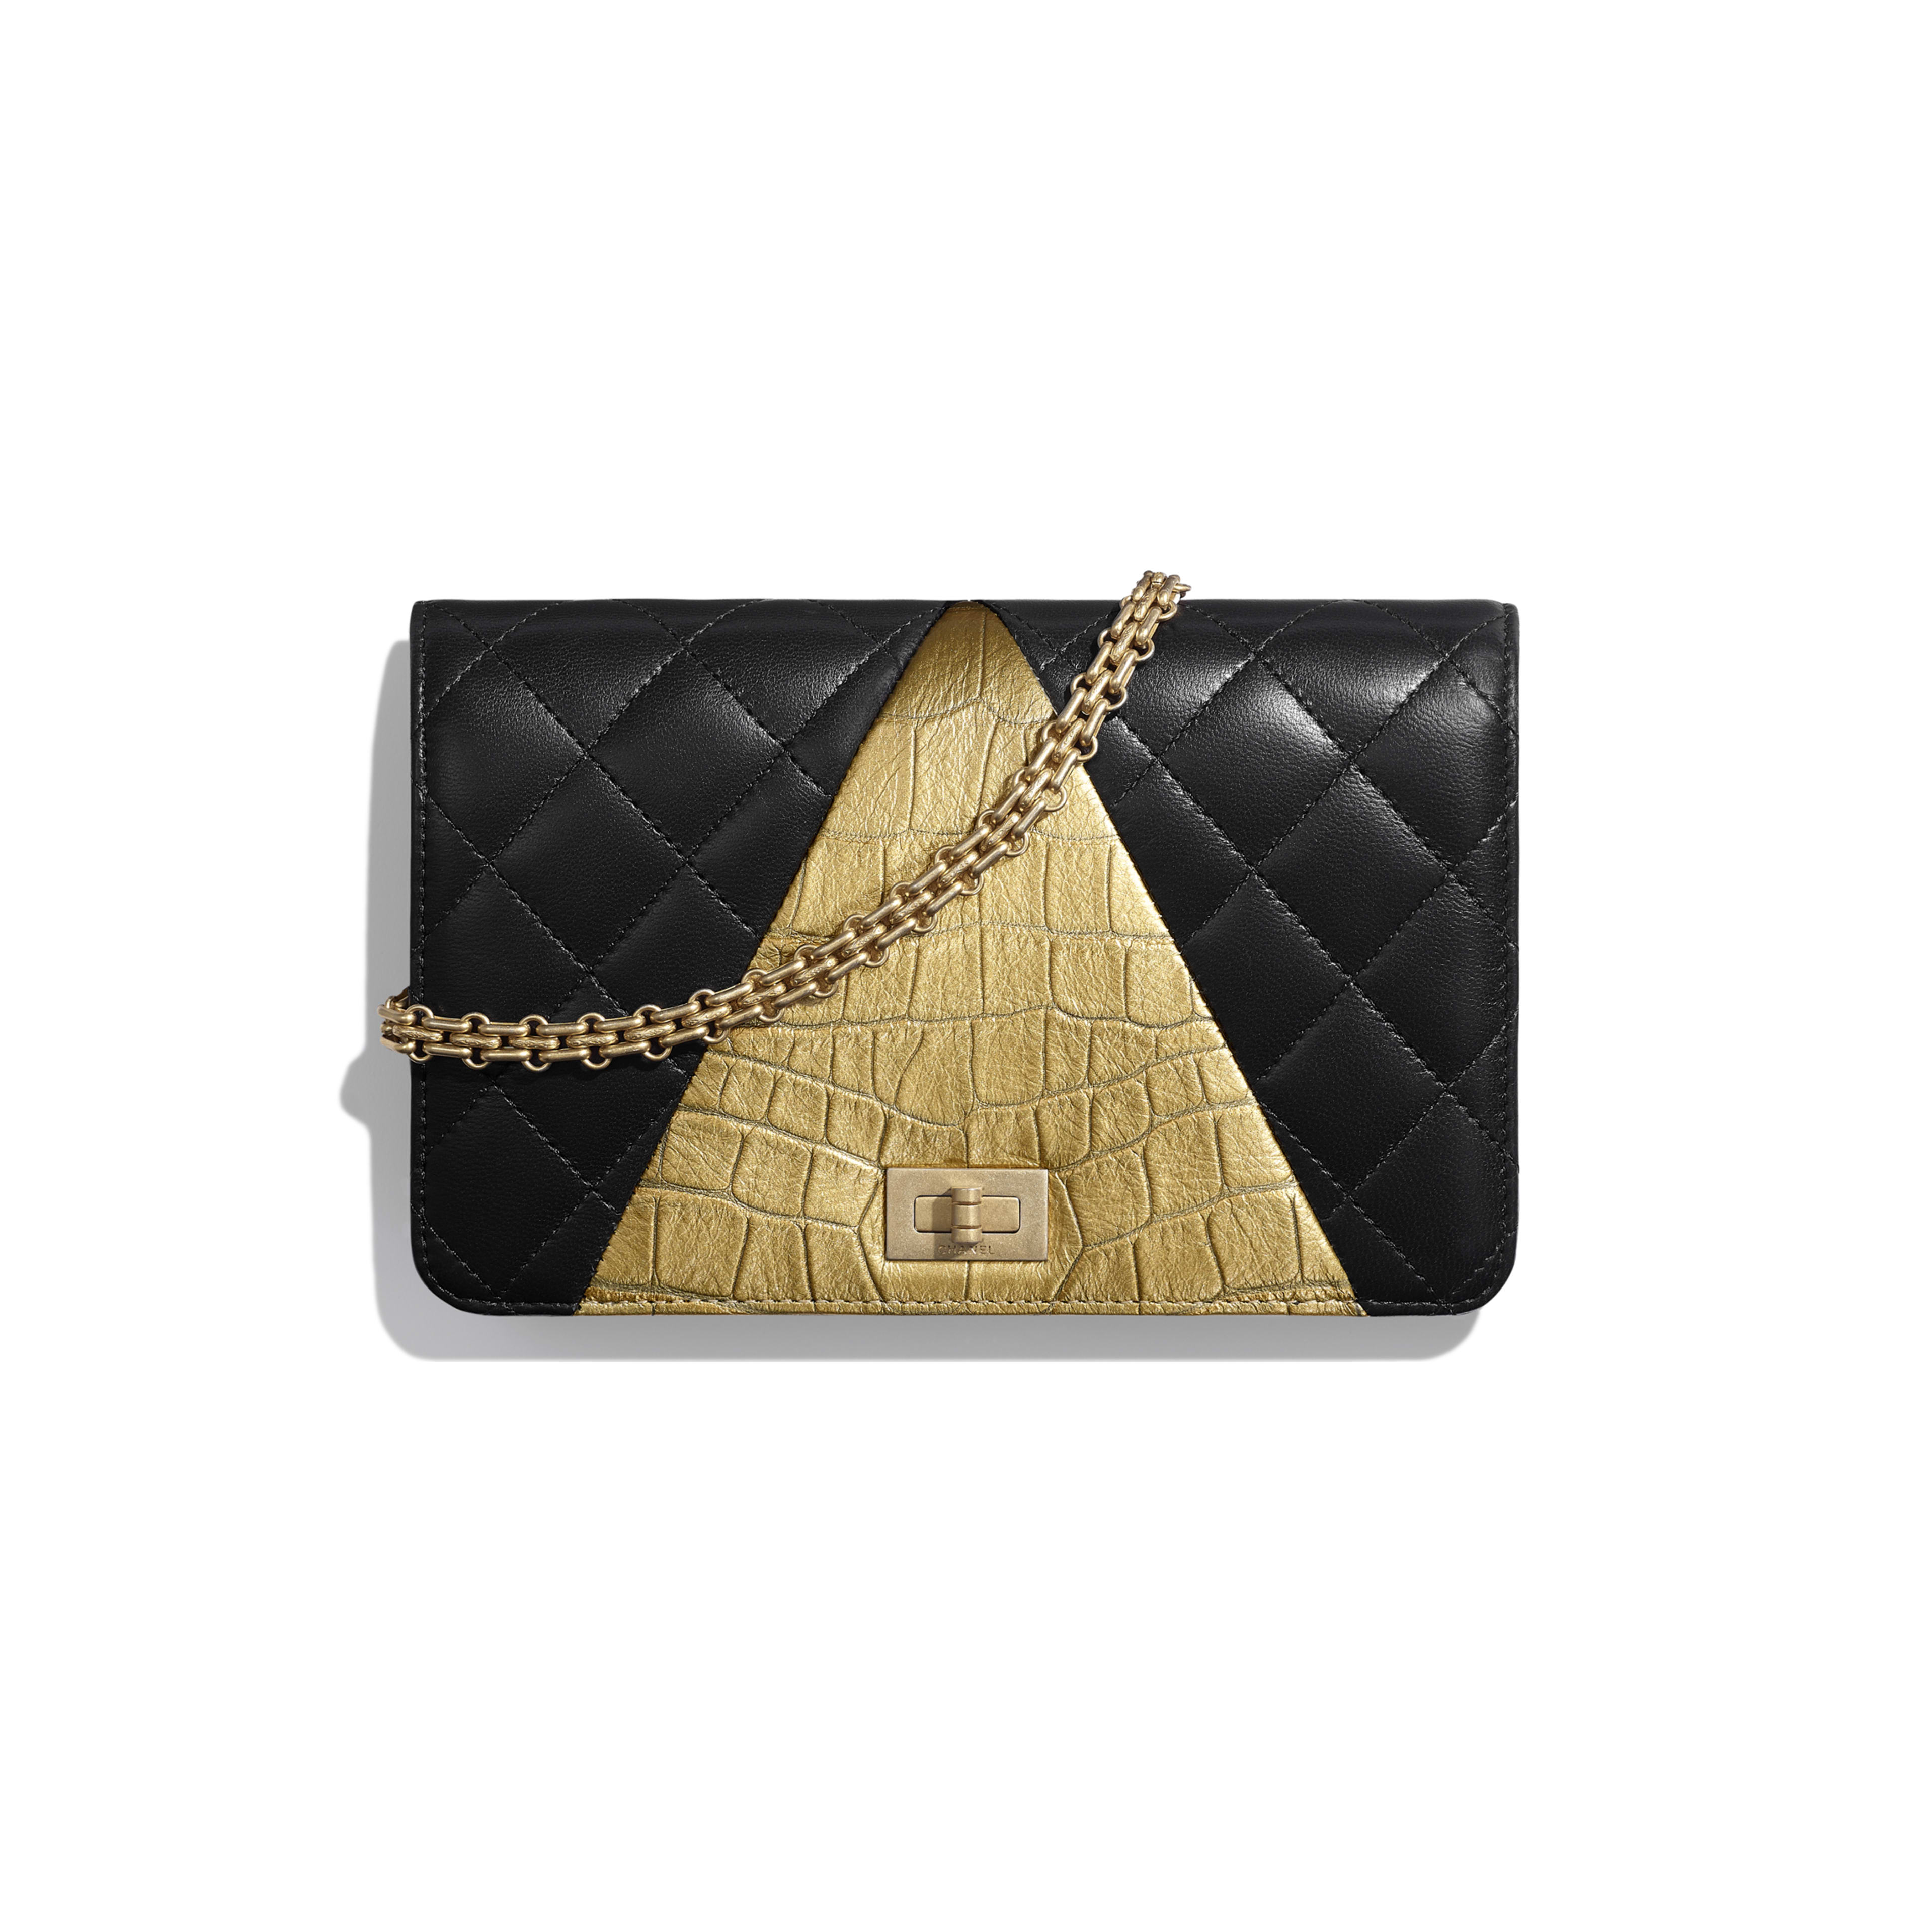 Wallet on Chain - Black & Gold - Lambskin, Crocodile Embossed Calfskin & Gold-Tone Metal - Default view - see full sized version